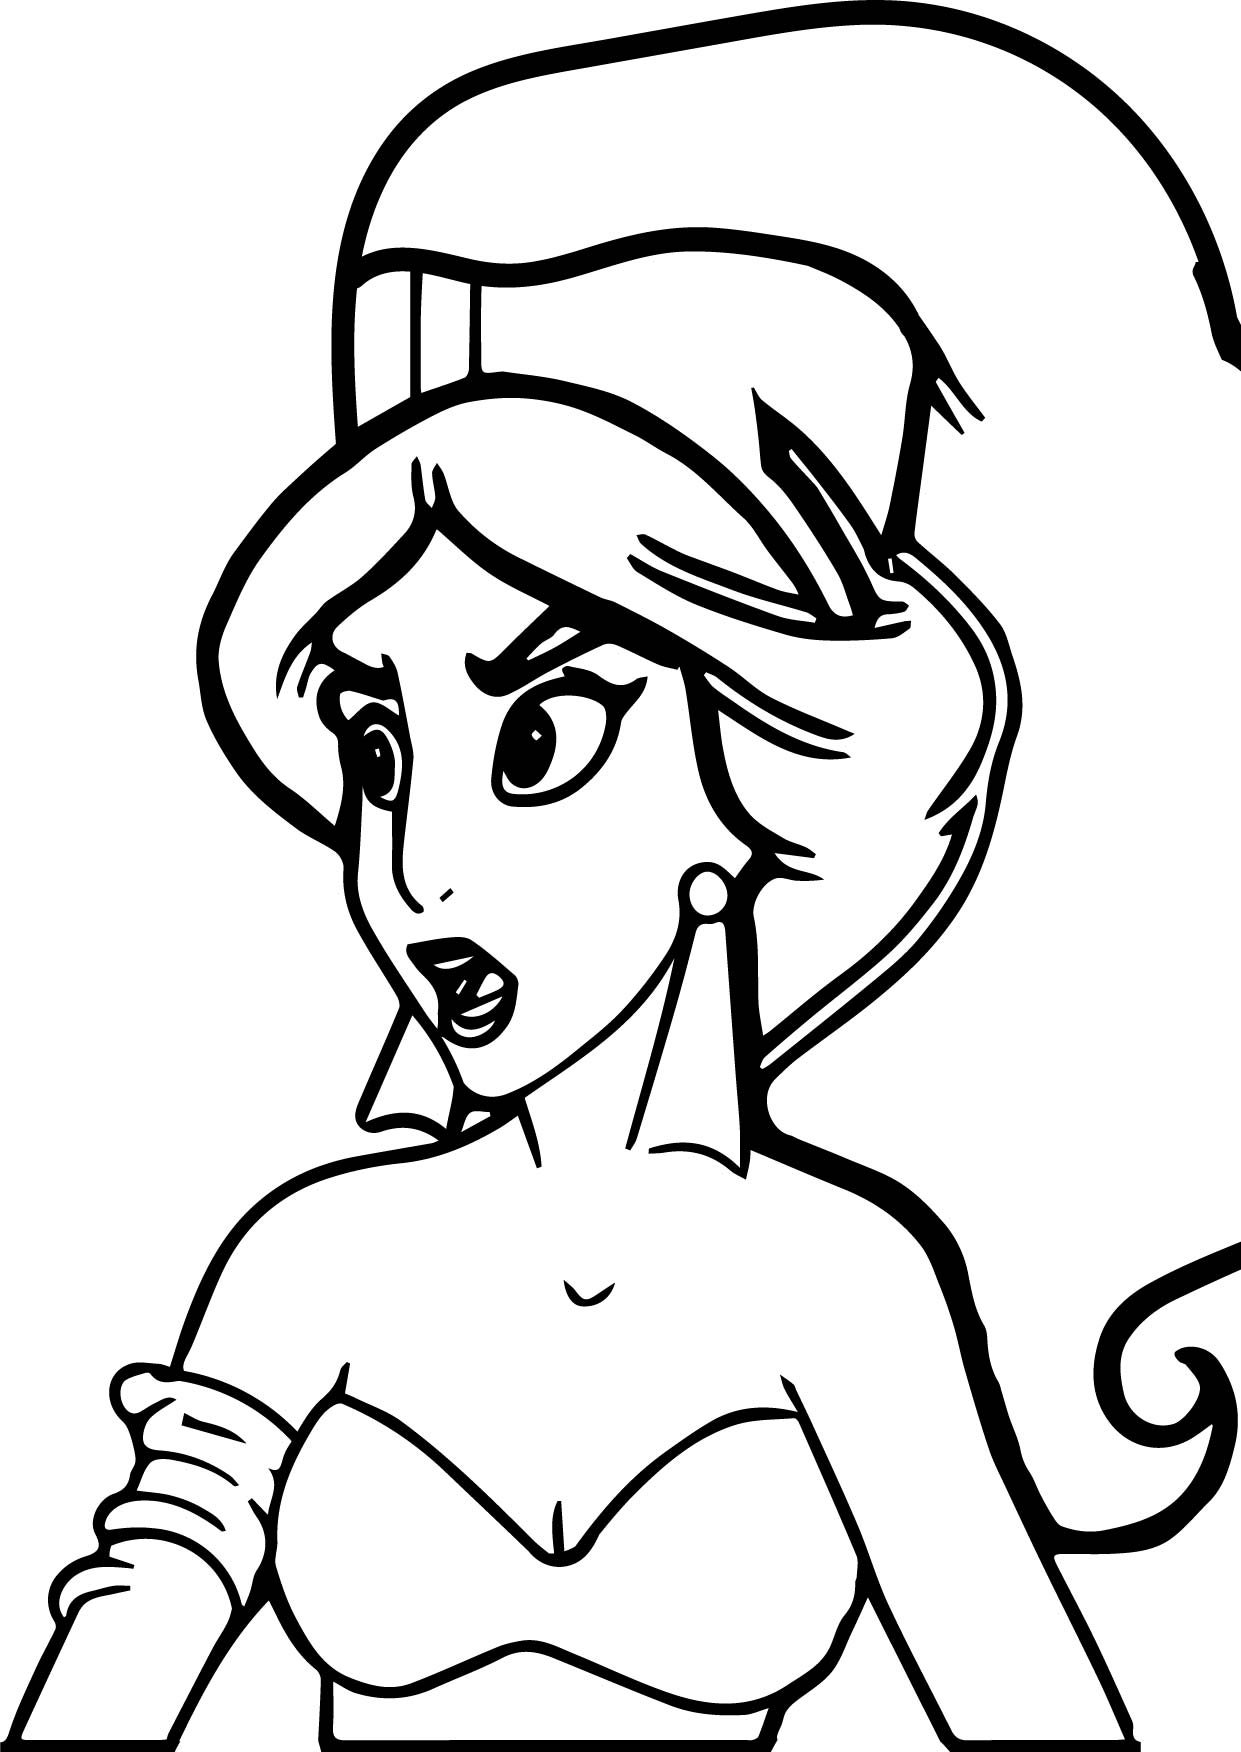 princess jasmine from aladdin movie coloring page wecoloringpage